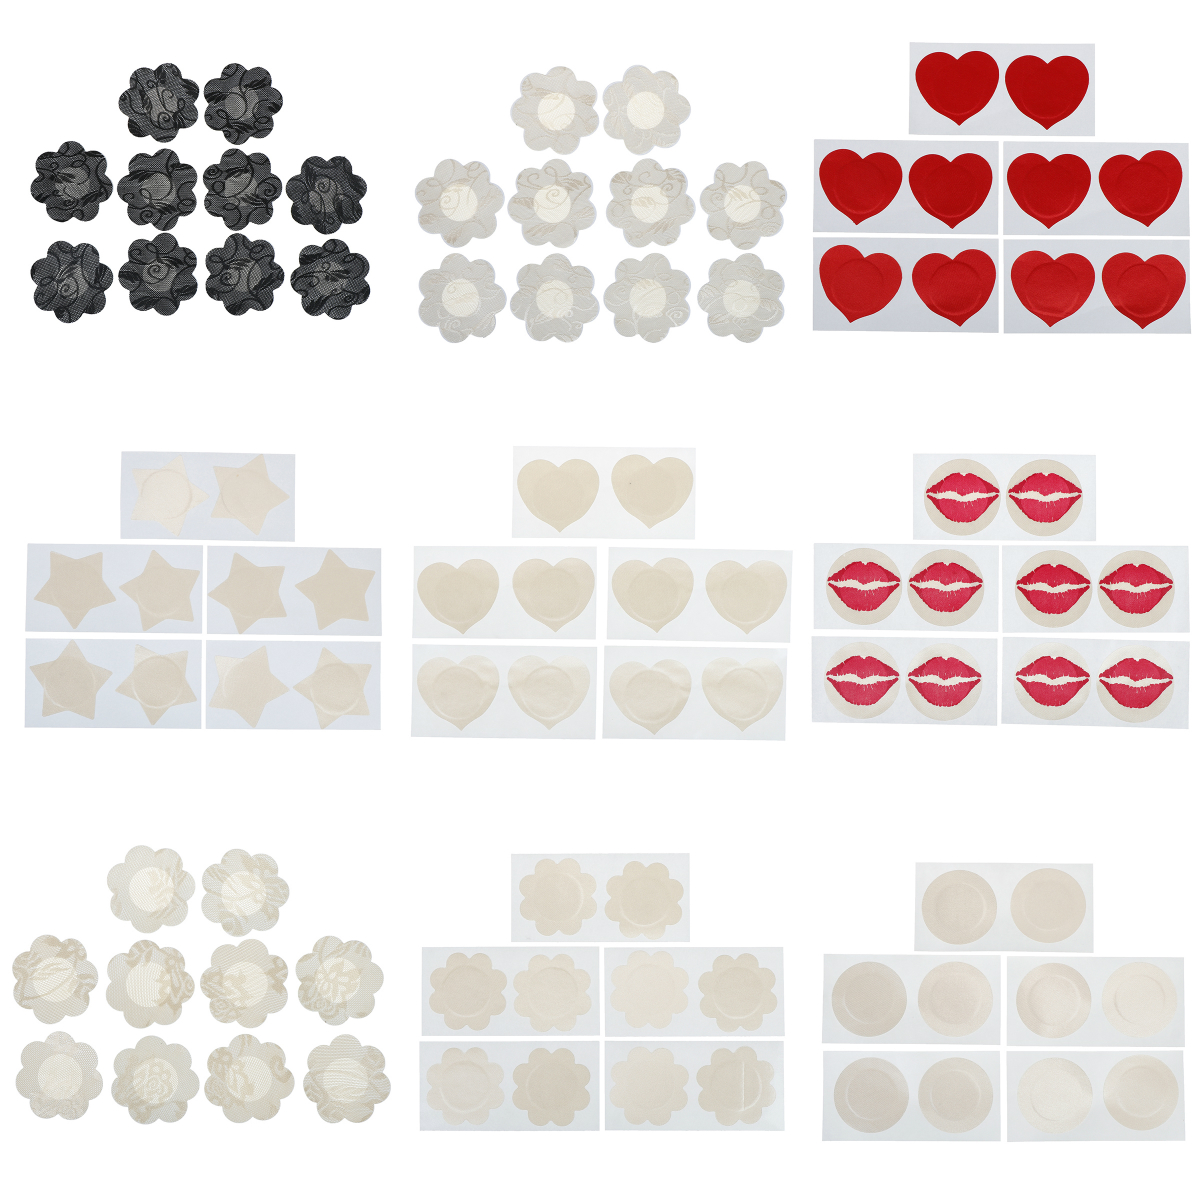 5 Pairs Women's Invisible Breast Lift Tape Overlays On Bra Nipple Stickers Chest Stickers Adhesivo Bra Nipple Covers Accessories